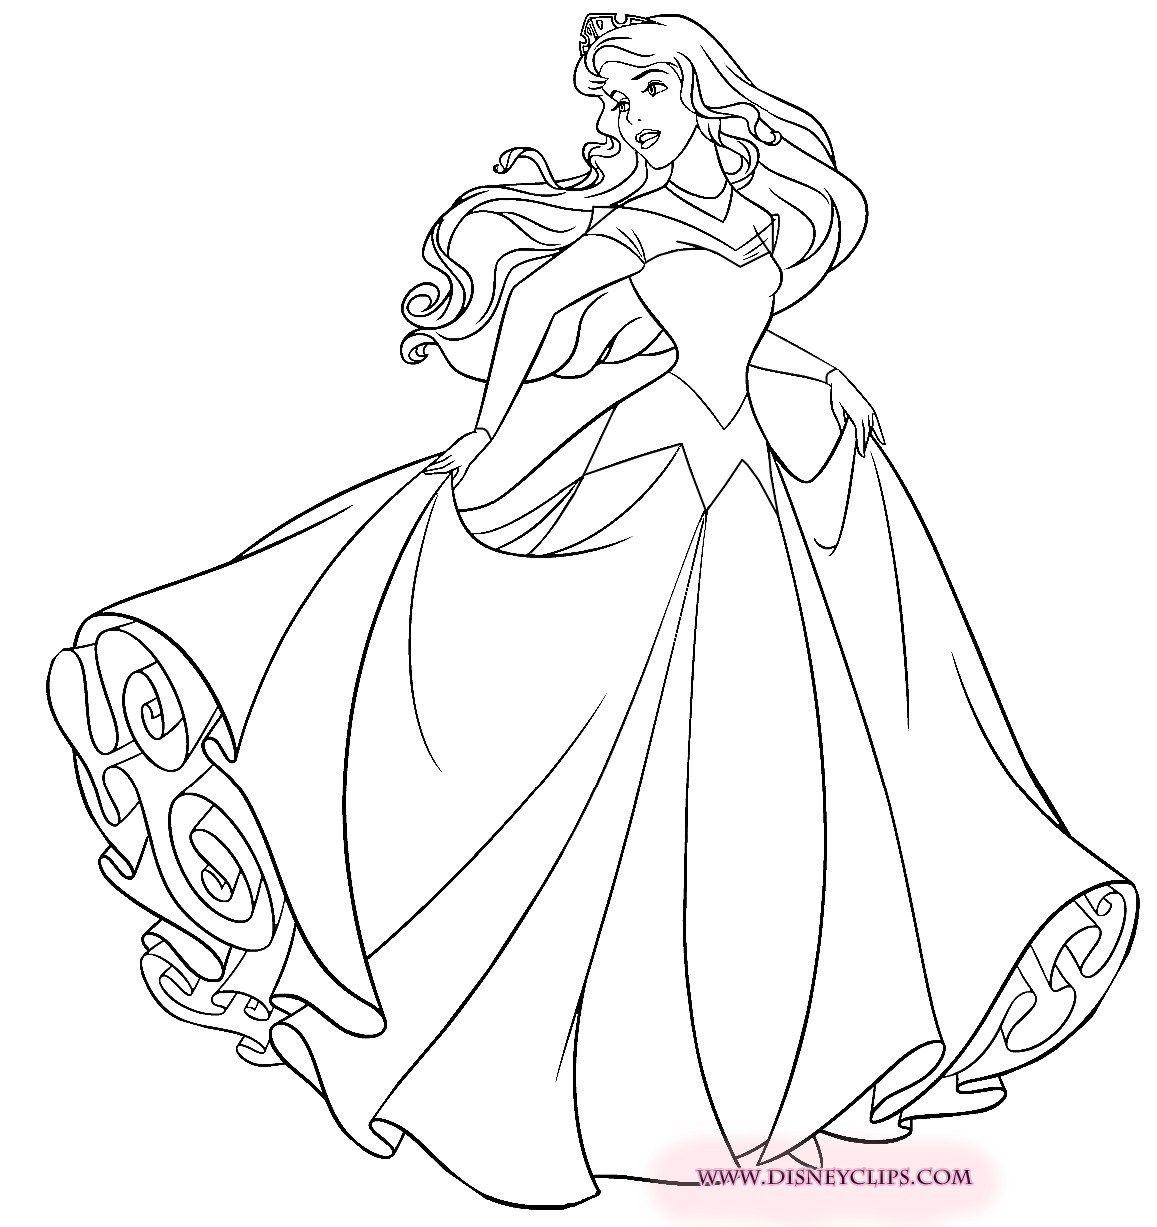 24 Amazing Image Of Aurora Coloring Pages Sleeping Beauty